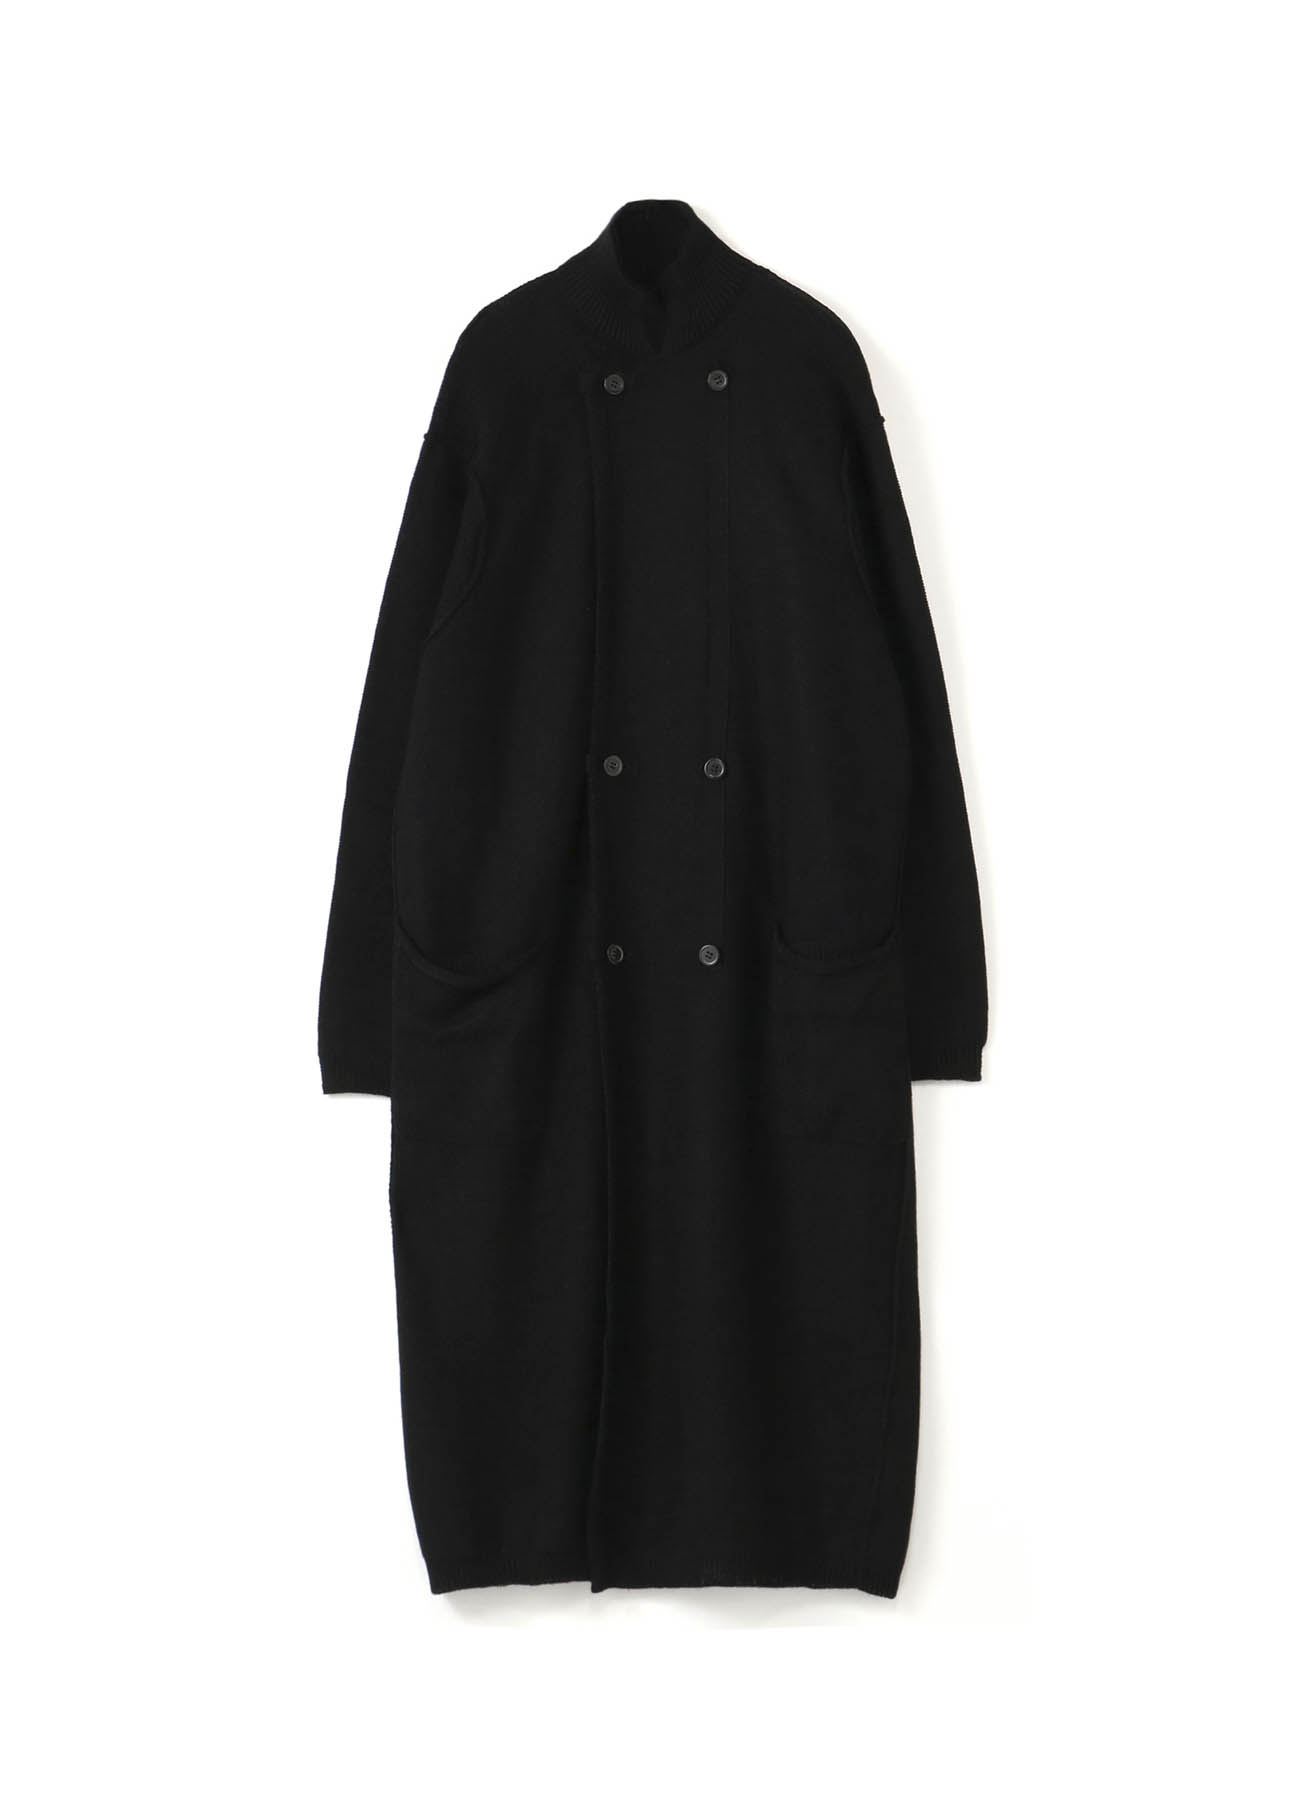 POLYETHYLENE TWISTED YARN REVERSIBLE COAT